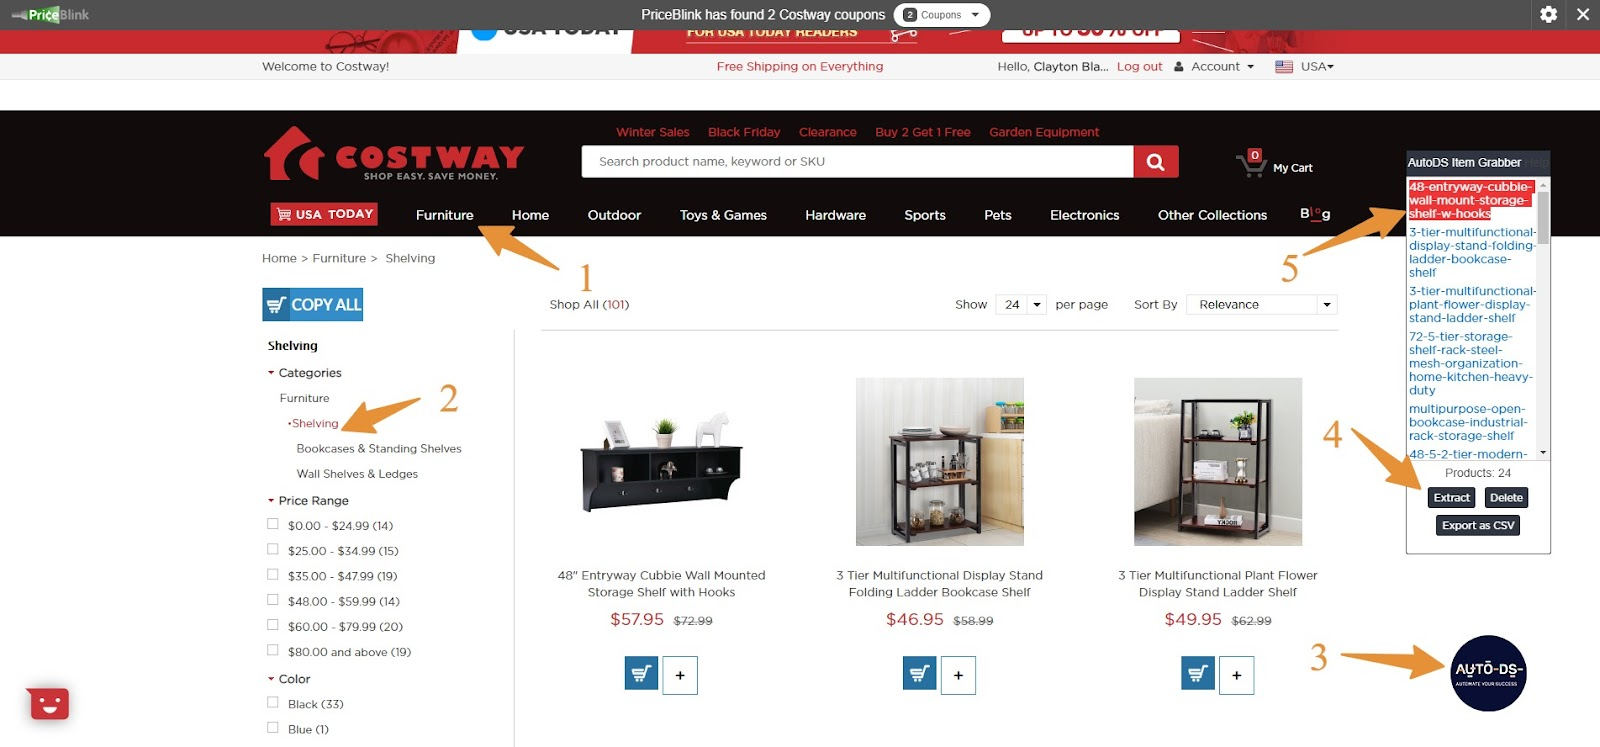 Dropshipping from Costway using AutoDS